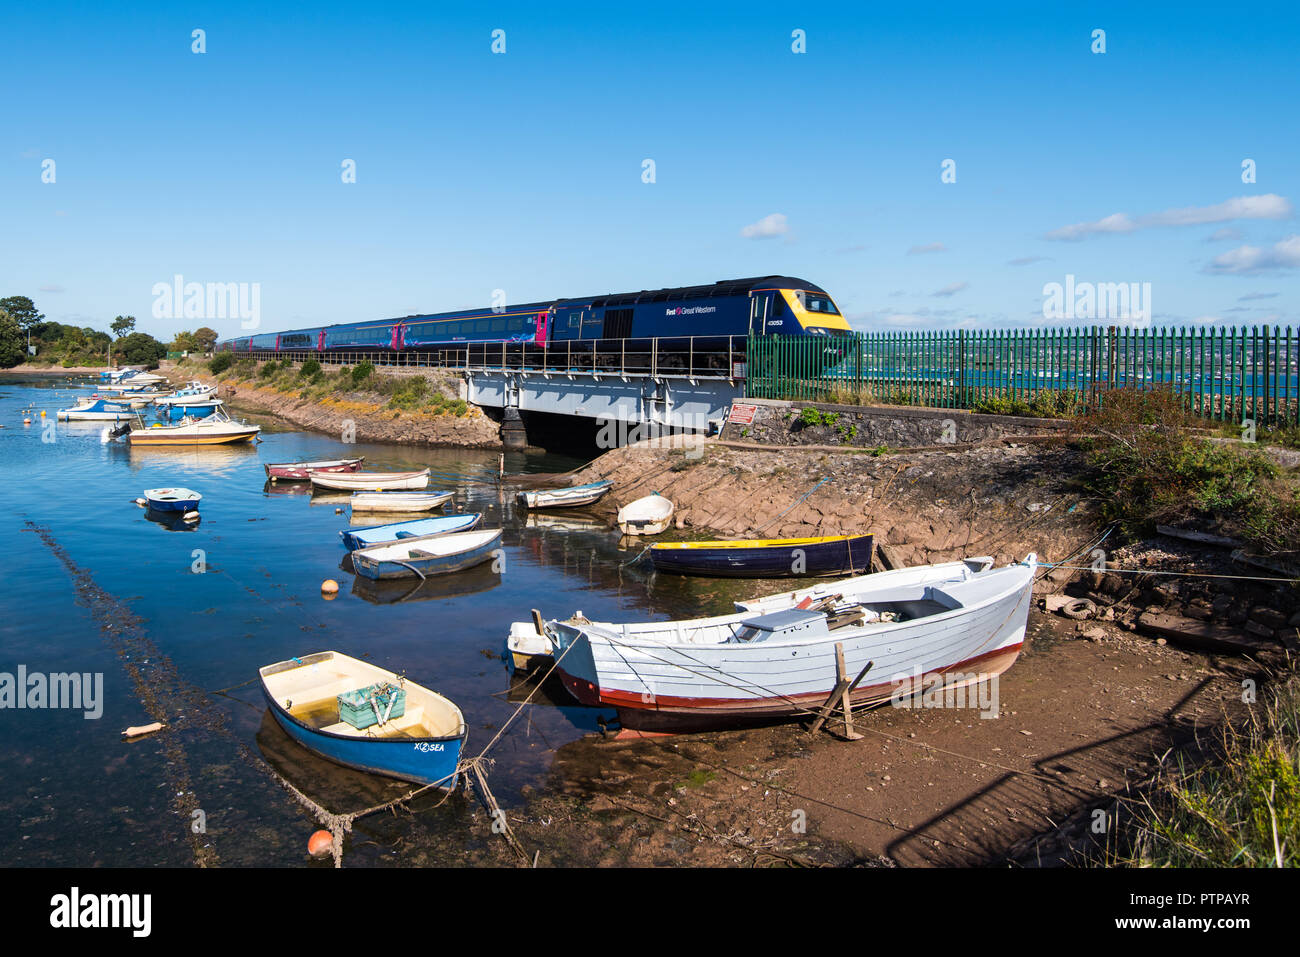 COCKWOOD, STARCROSS, DEVON, UK - First Great Western class 43 High Speed Train 43053 passes the harbour at Cockwood on the Exe Estuary. - Stock Image